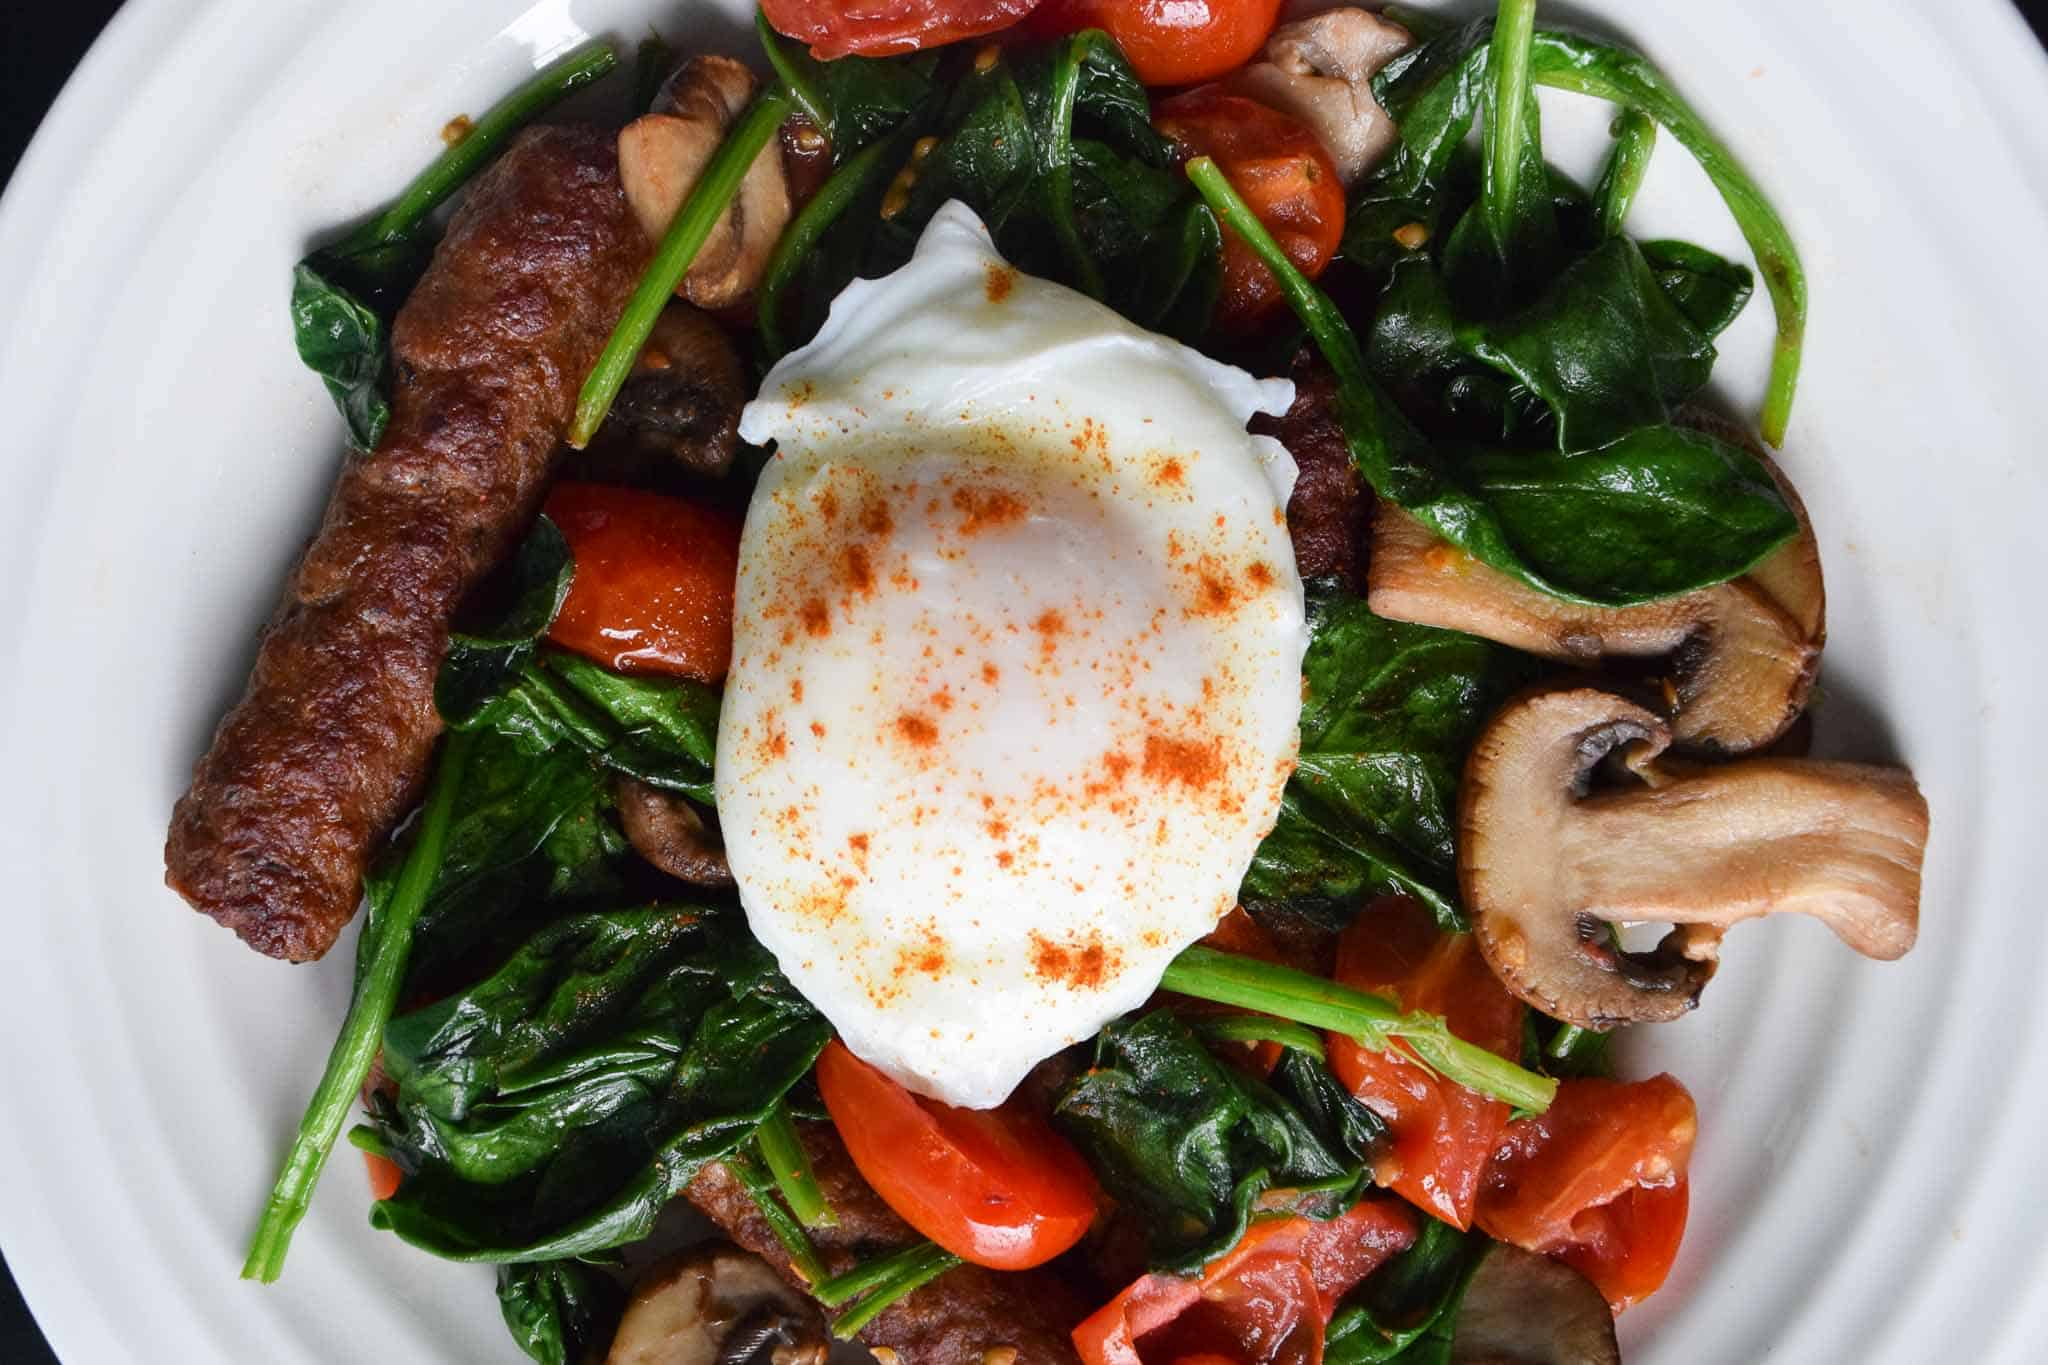 Poached Eggs Over Chicken Sausage and Veggies overhead shot